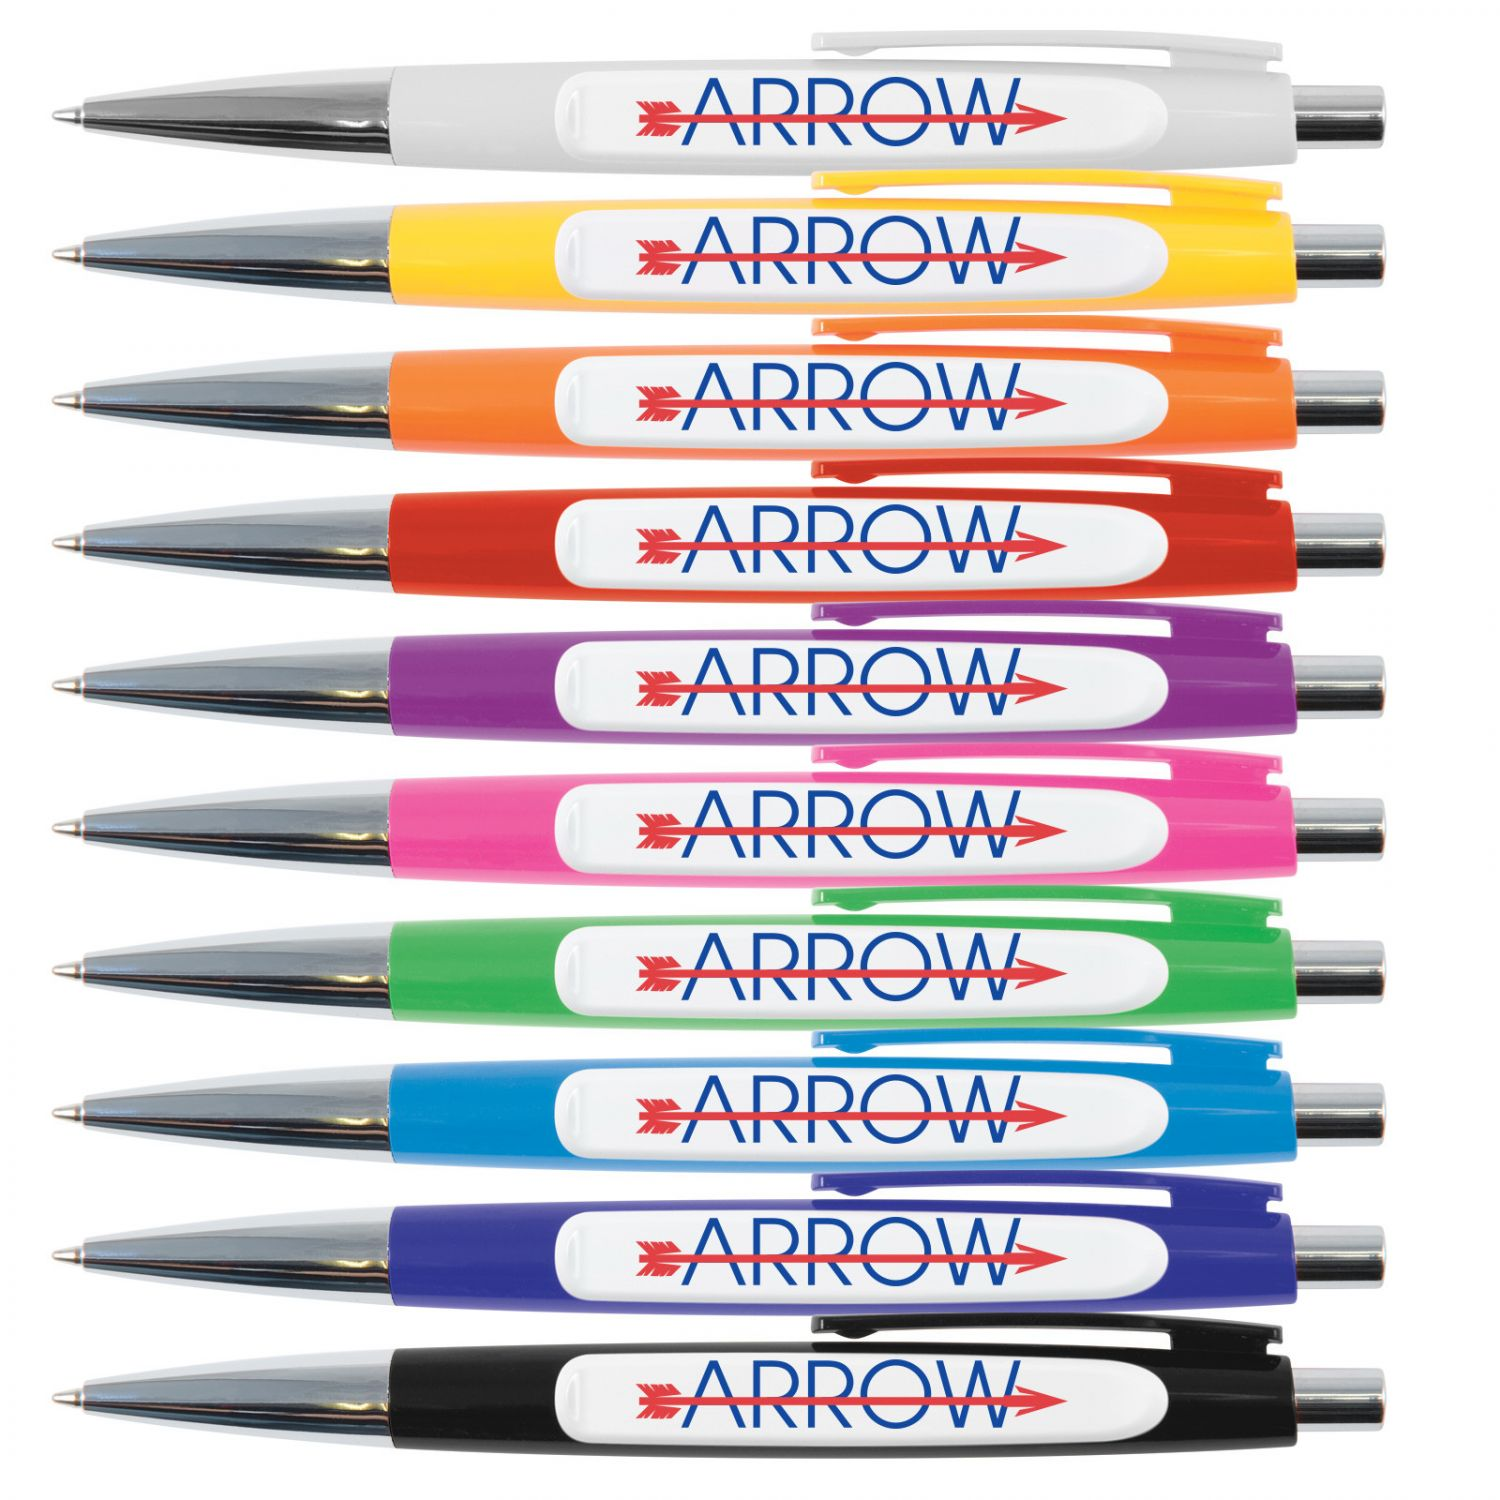 Arrow Pen